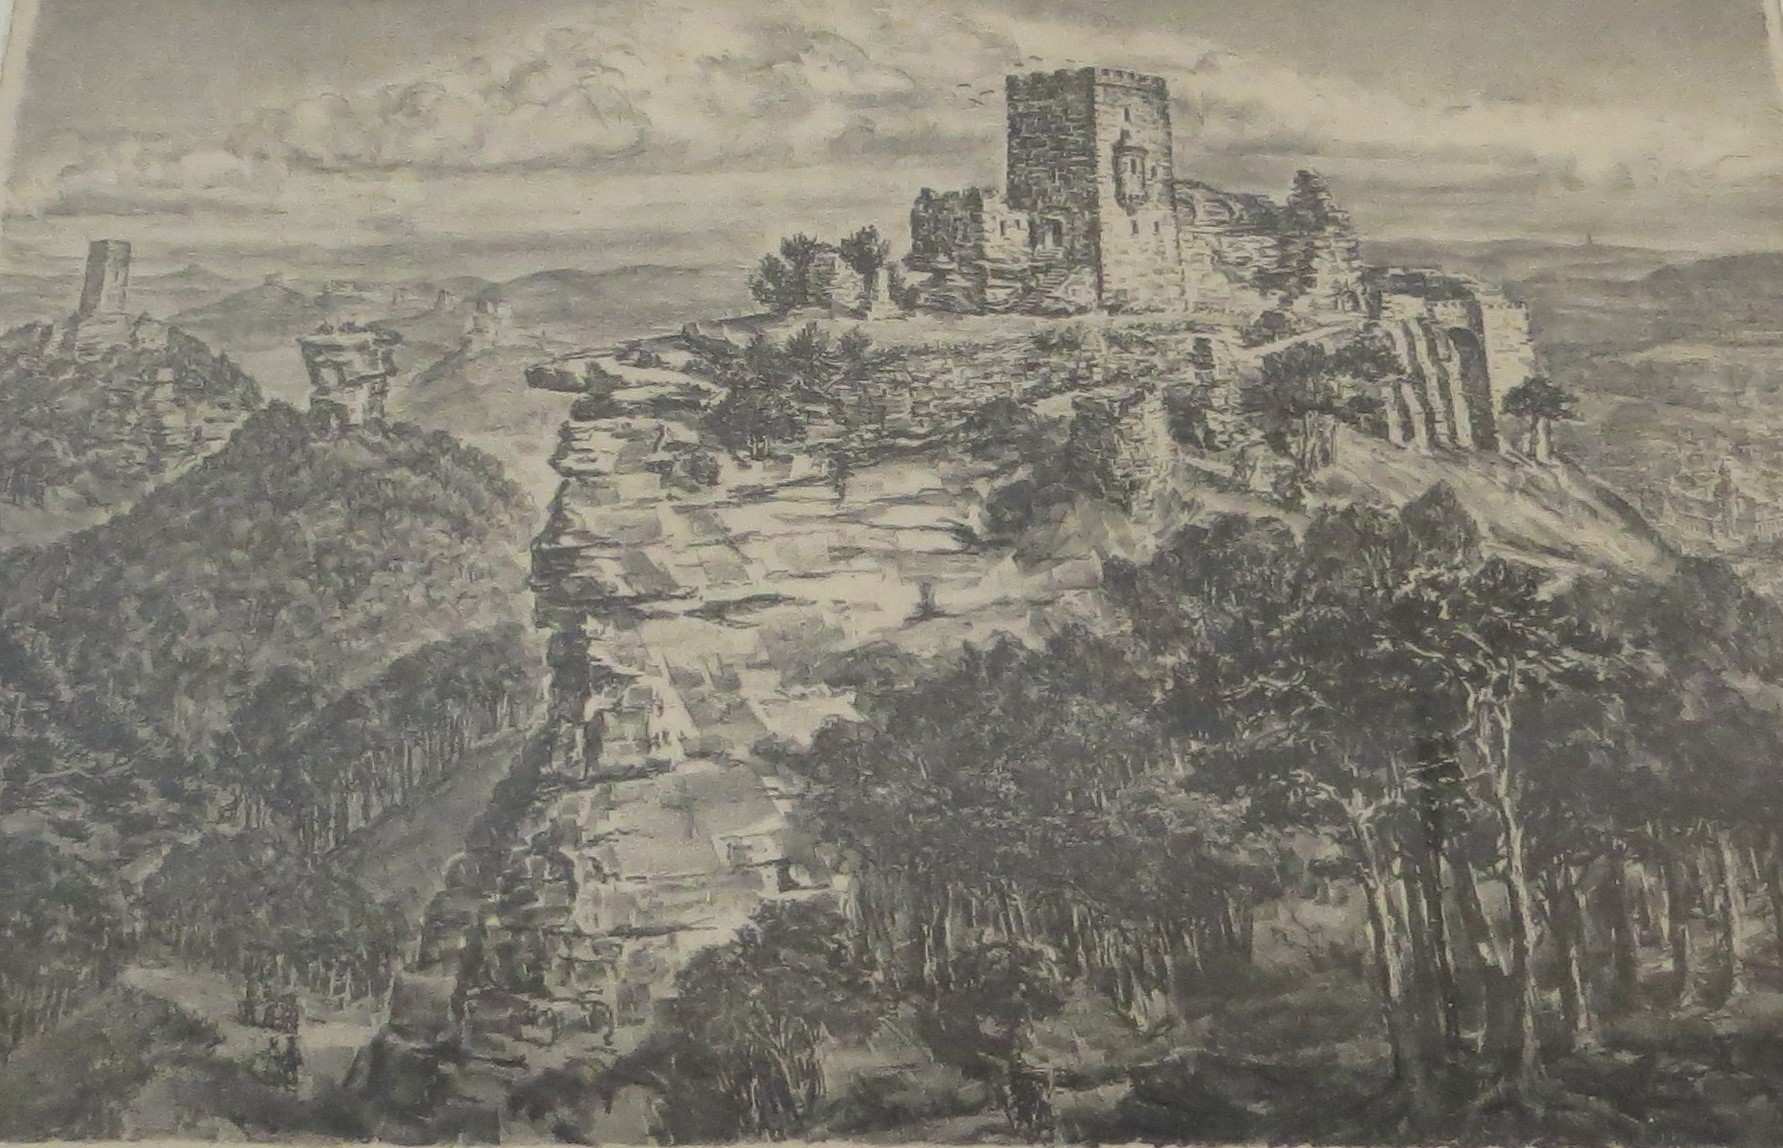 Lithographie, Der Trifels (Museum der Stadt Bad Bergzabern CC BY-NC-SA)